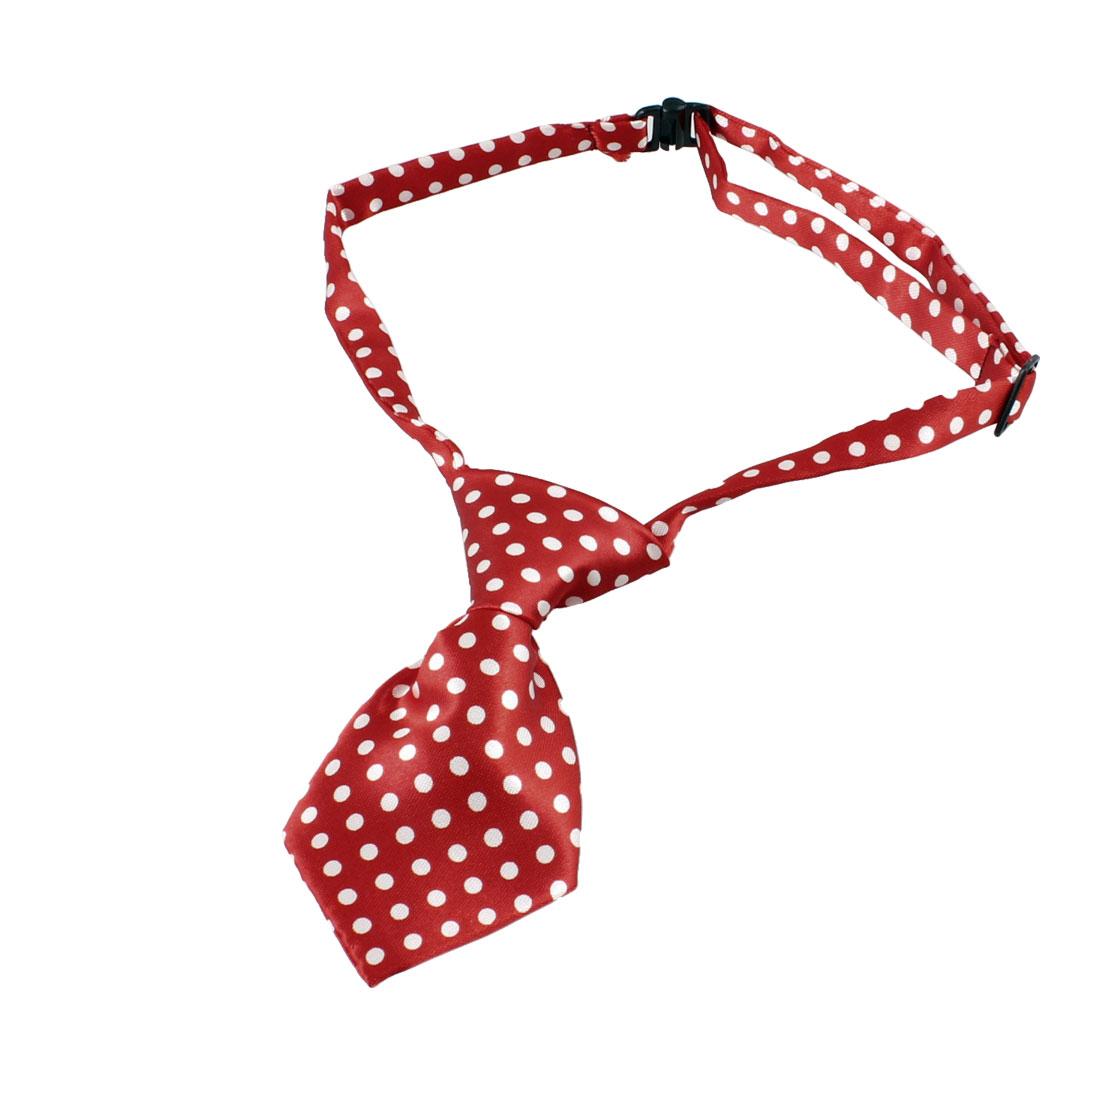 Pet Puppy Dog Cat Dots Pattern Adjustable Decoration Grooming Necktie Red - image 1 of 1